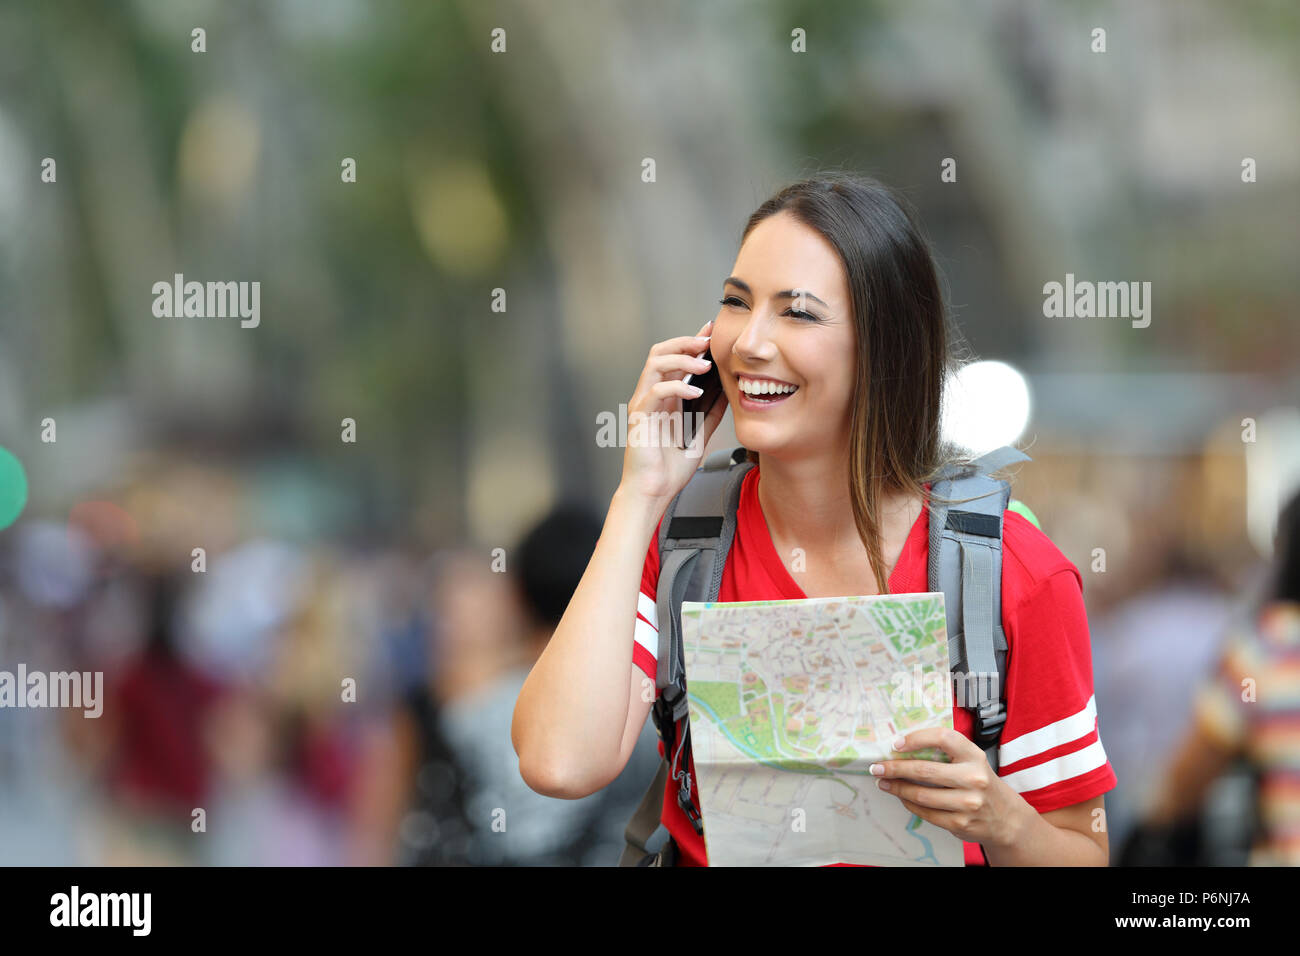 Teenage tourist talking on phone and holding a map in the street - Stock Image